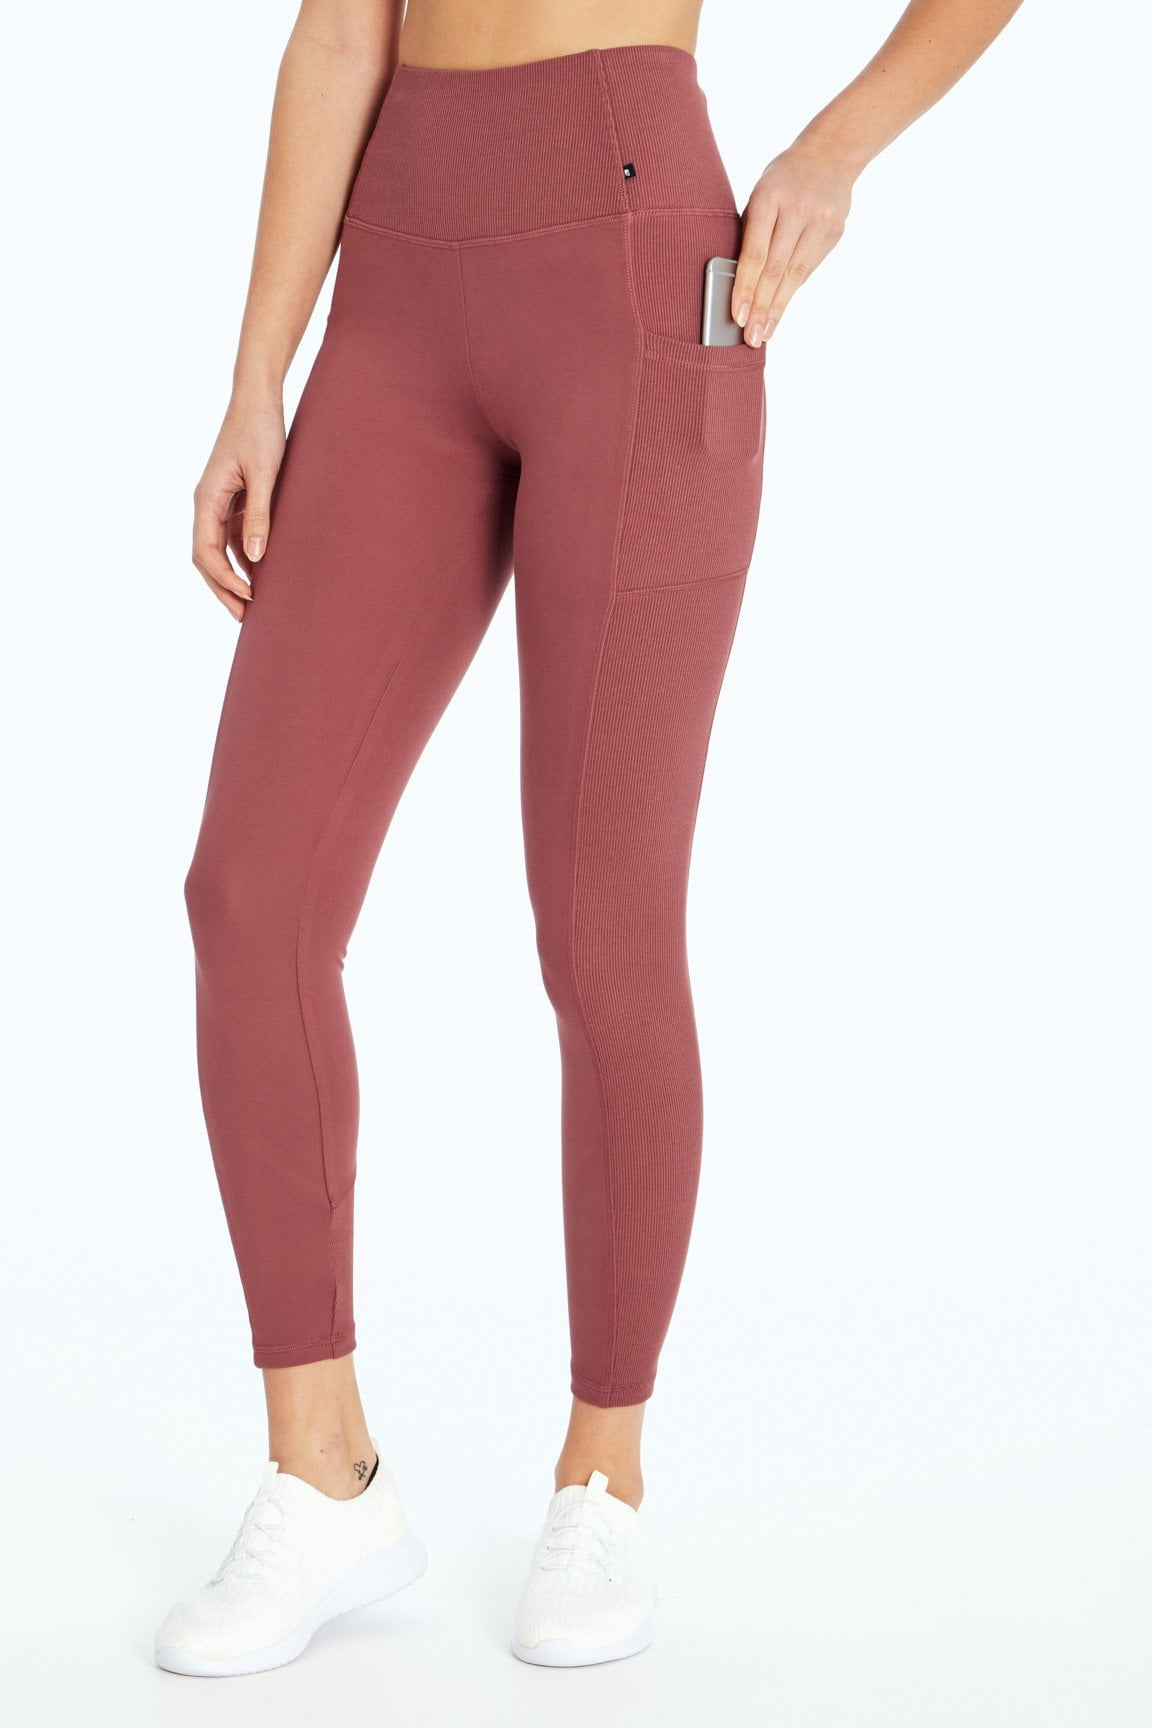 Ivanna Ribbed Legging (Crushed Berry)